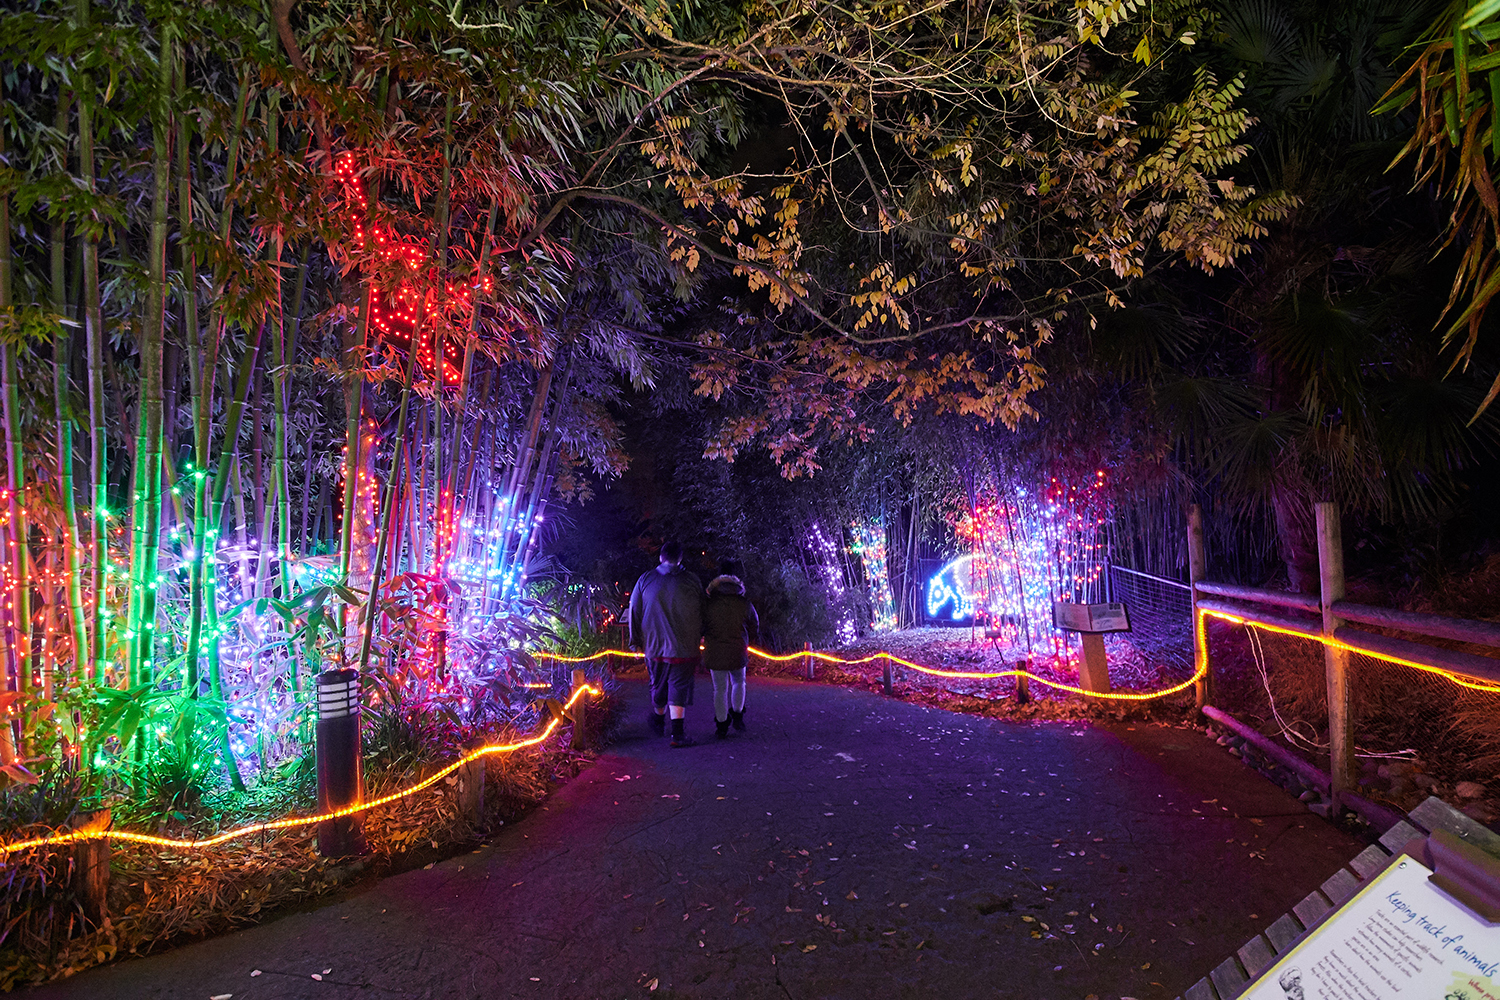 "While many holiday events are canceled this year, some still remain! One of them is ZooLights at Point Defiance Zoo & Aquarium in Tacoma, open nightly from 5-9 p.m. (last entry is at 8 p.m.) through January 3, 2021. Ticket are limited, but if you're able to nab one you'll see over 700,000 lights strung up throughout the property, which has been transformed into a colorful winter wonderland with 3D animal light displays like a baby tapir, giant tiger face, tunnel of lights and even a Seahawks tree! Tickets are $10-$14 and can be purchased{&nbsp;}<a  href=""https://www.pdza.org/event/zoolights/"" target=""_blank"" title=""https://www.pdza.org/event/zoolights/"">online</a>. (Image: Tash Haynes / Seattle Refined){&nbsp;}"